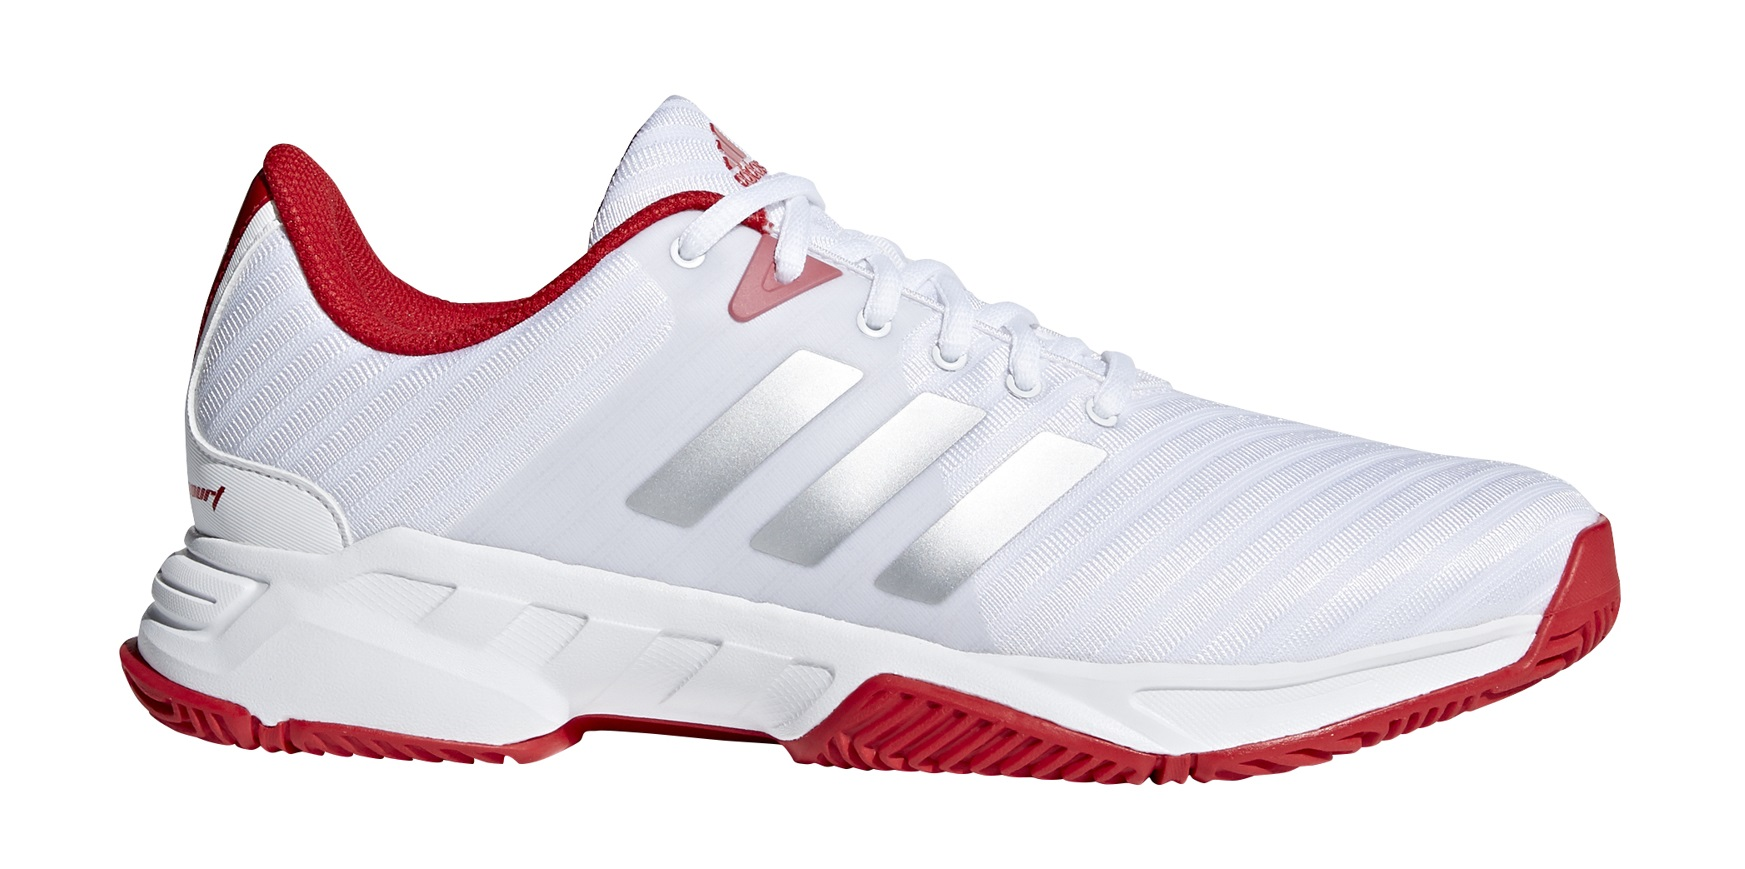 separation shoes 8447a 39cce Mens Tennis Shoes Barricade Court 3 colore White - Adidas -